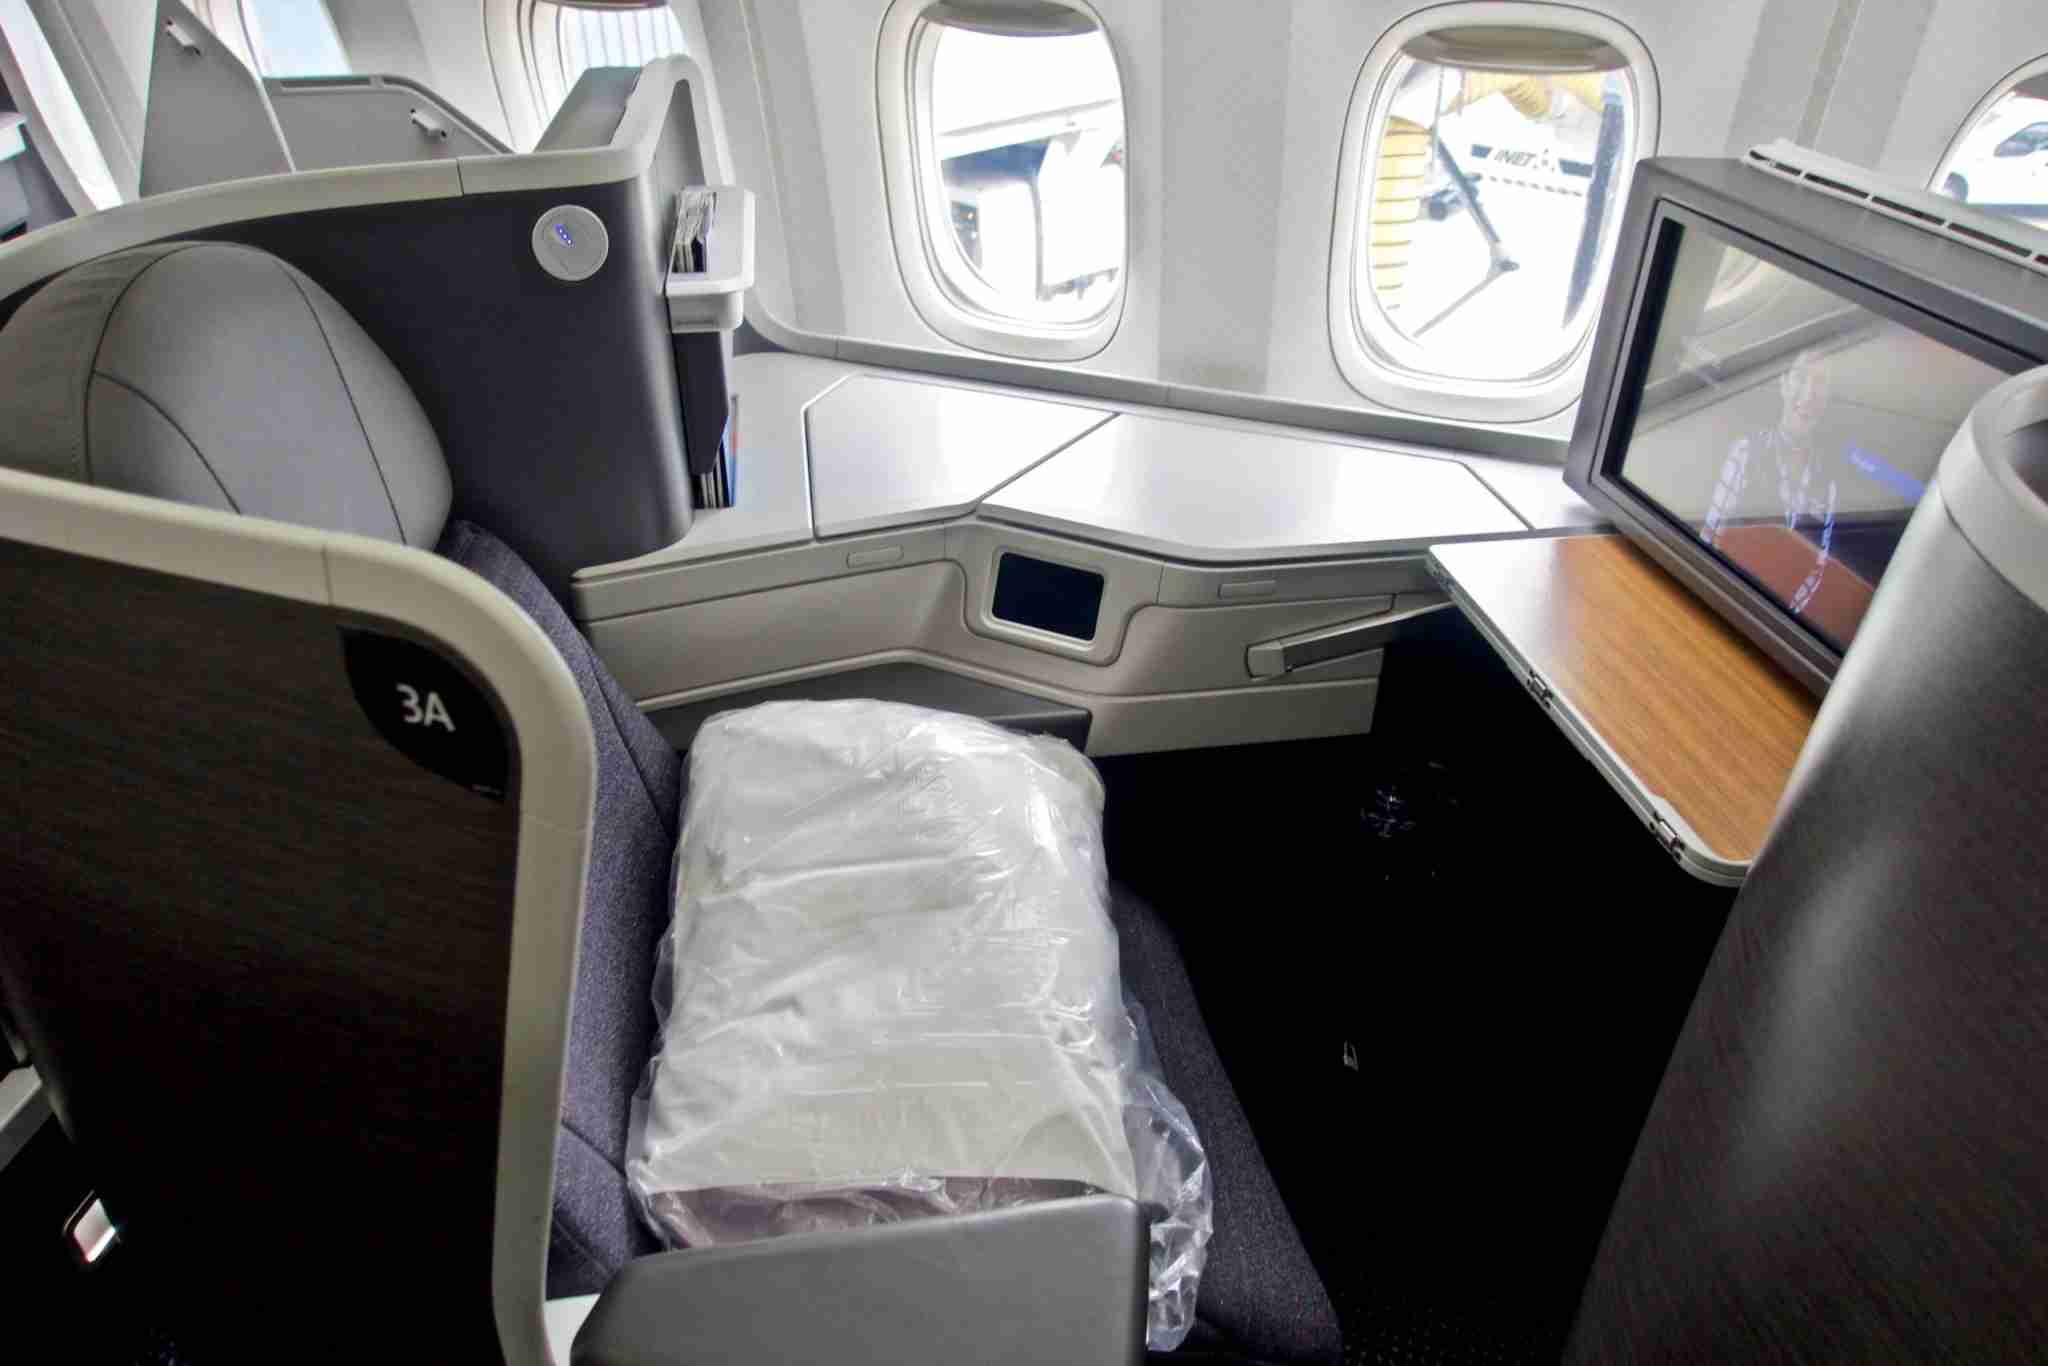 American Airlines business class on the B777-200. Photo by Christian Kramer / The Points Guy